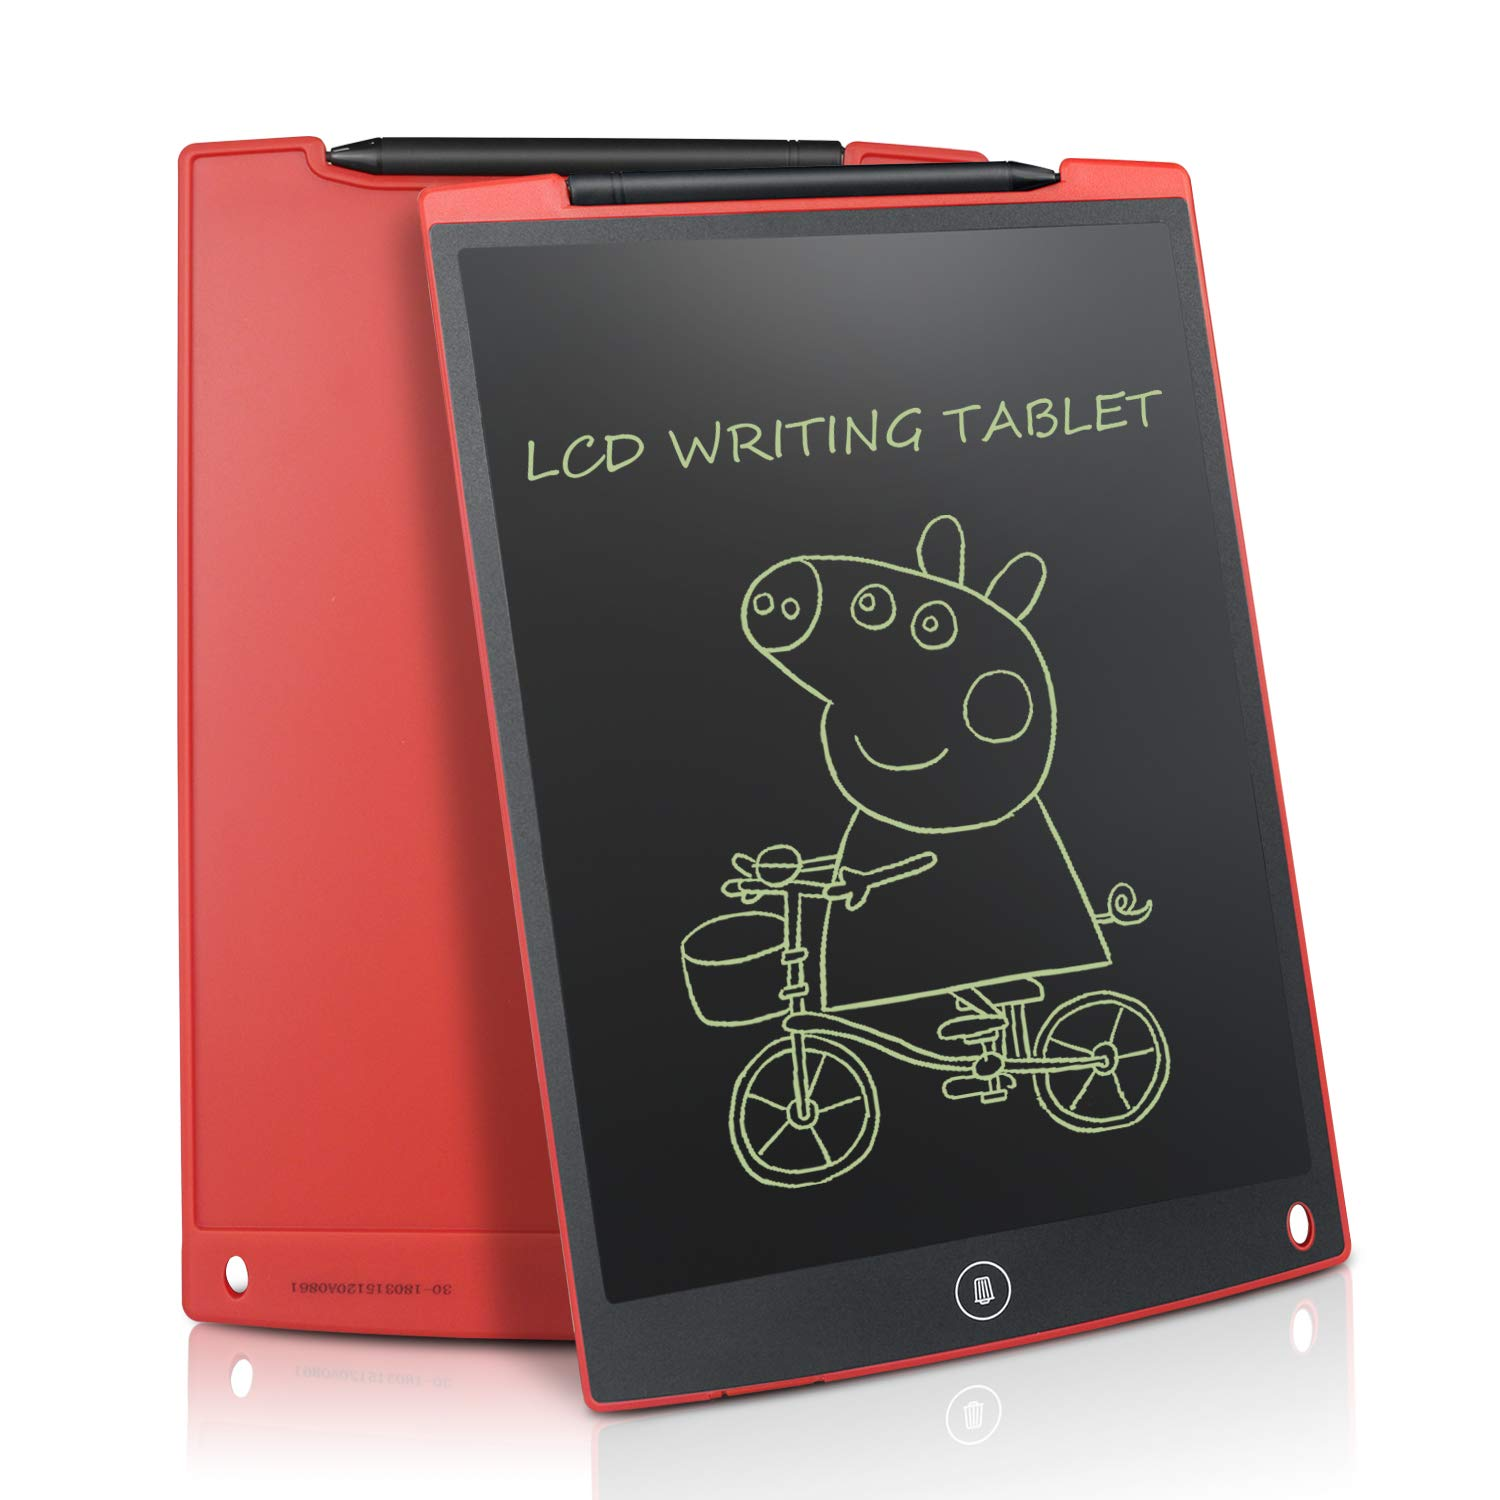 12 inch LCD Graphics Tablet LCD Writing Tablet/Writing Tablet Notepad with Pen Environmentally Friendly for Writing and Drawing Blue (black) Newyes NYWB12-BL